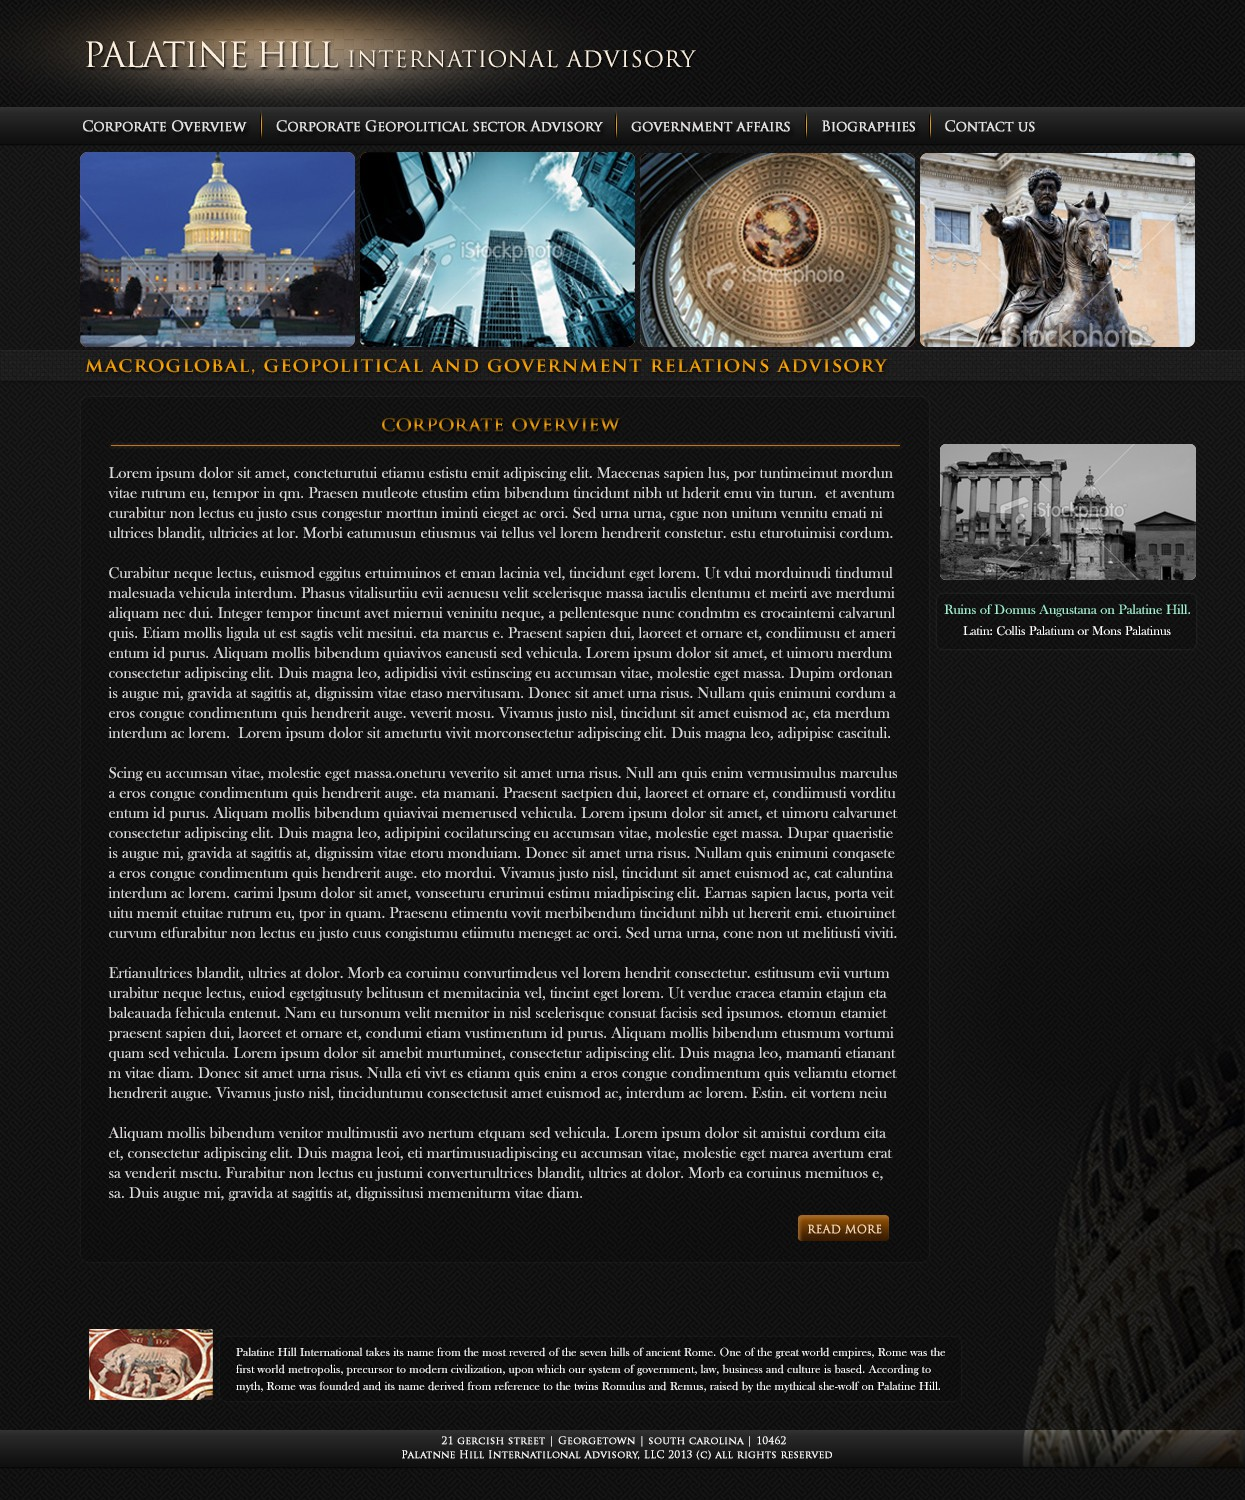 Help Palatine Hill  with a new website design